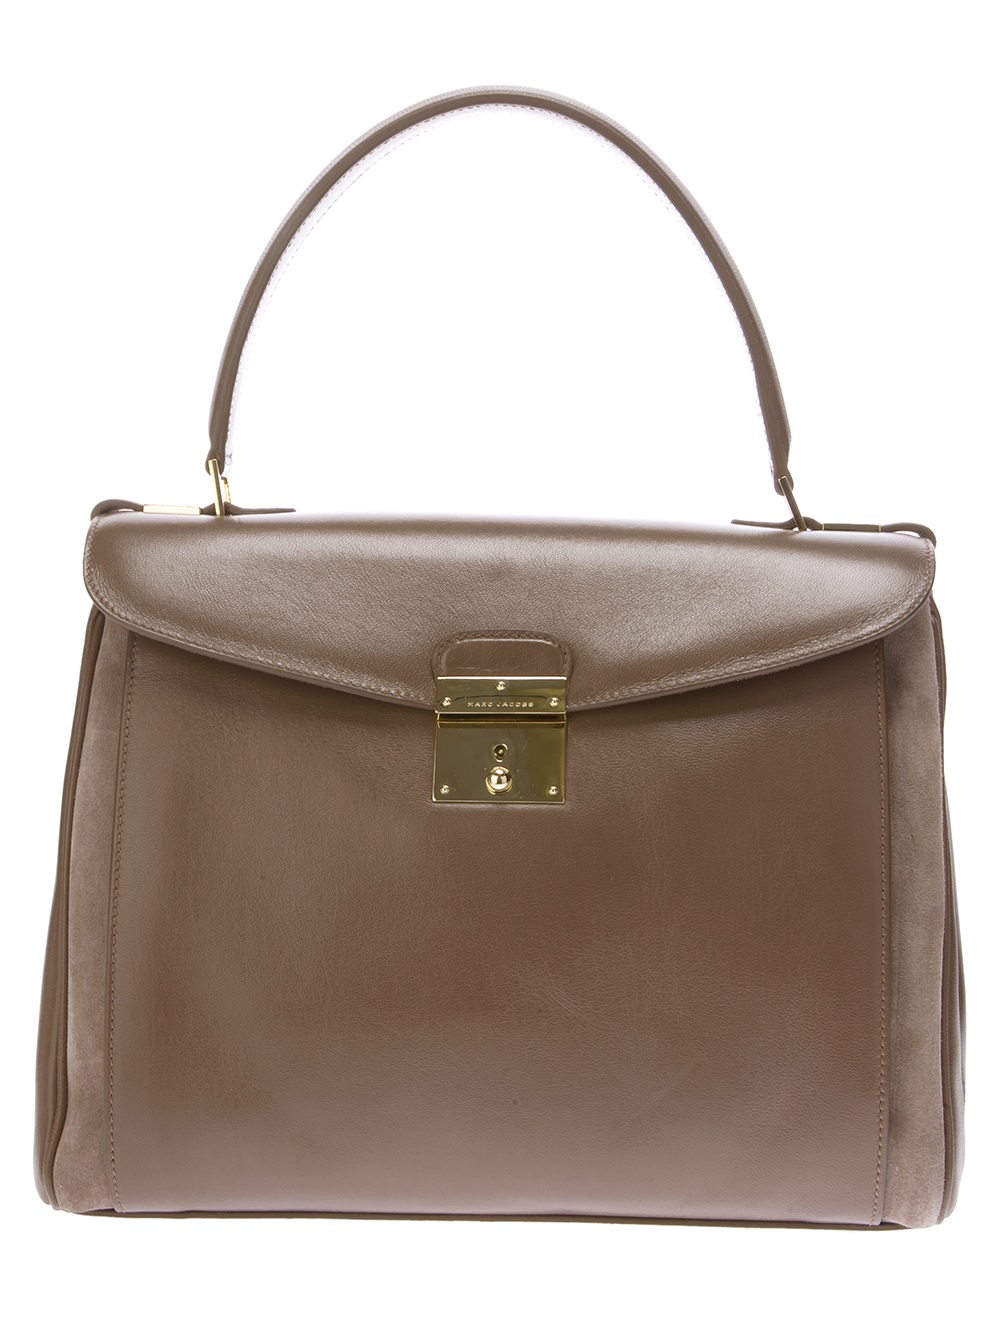 Lyst - Marc Jacobs  The Grand Majestic  Tote in Natural 220f9548d210c